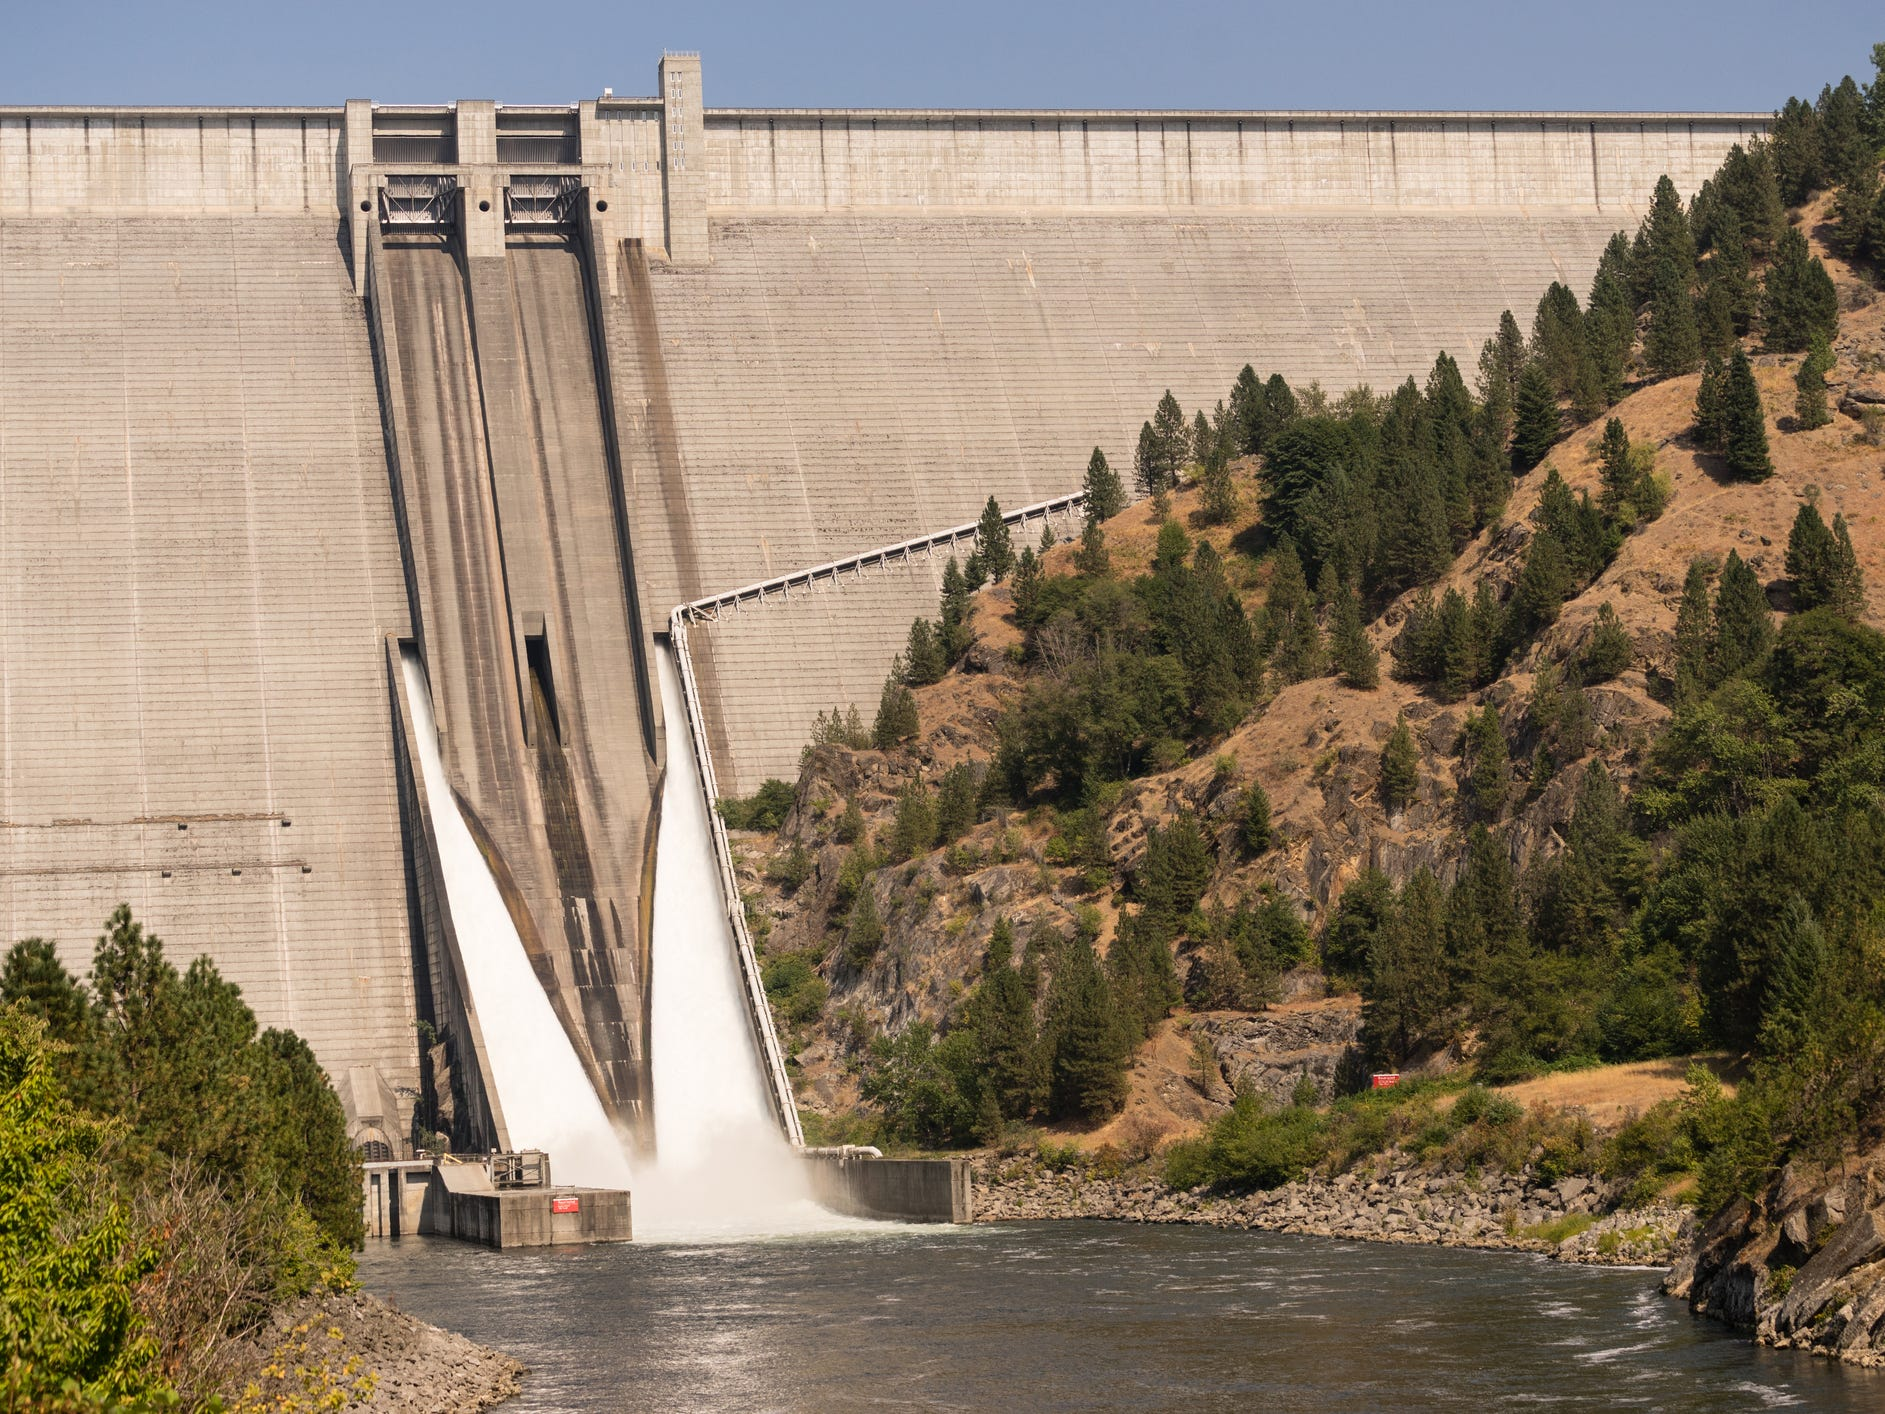 Dworshak Dam in Idaho.